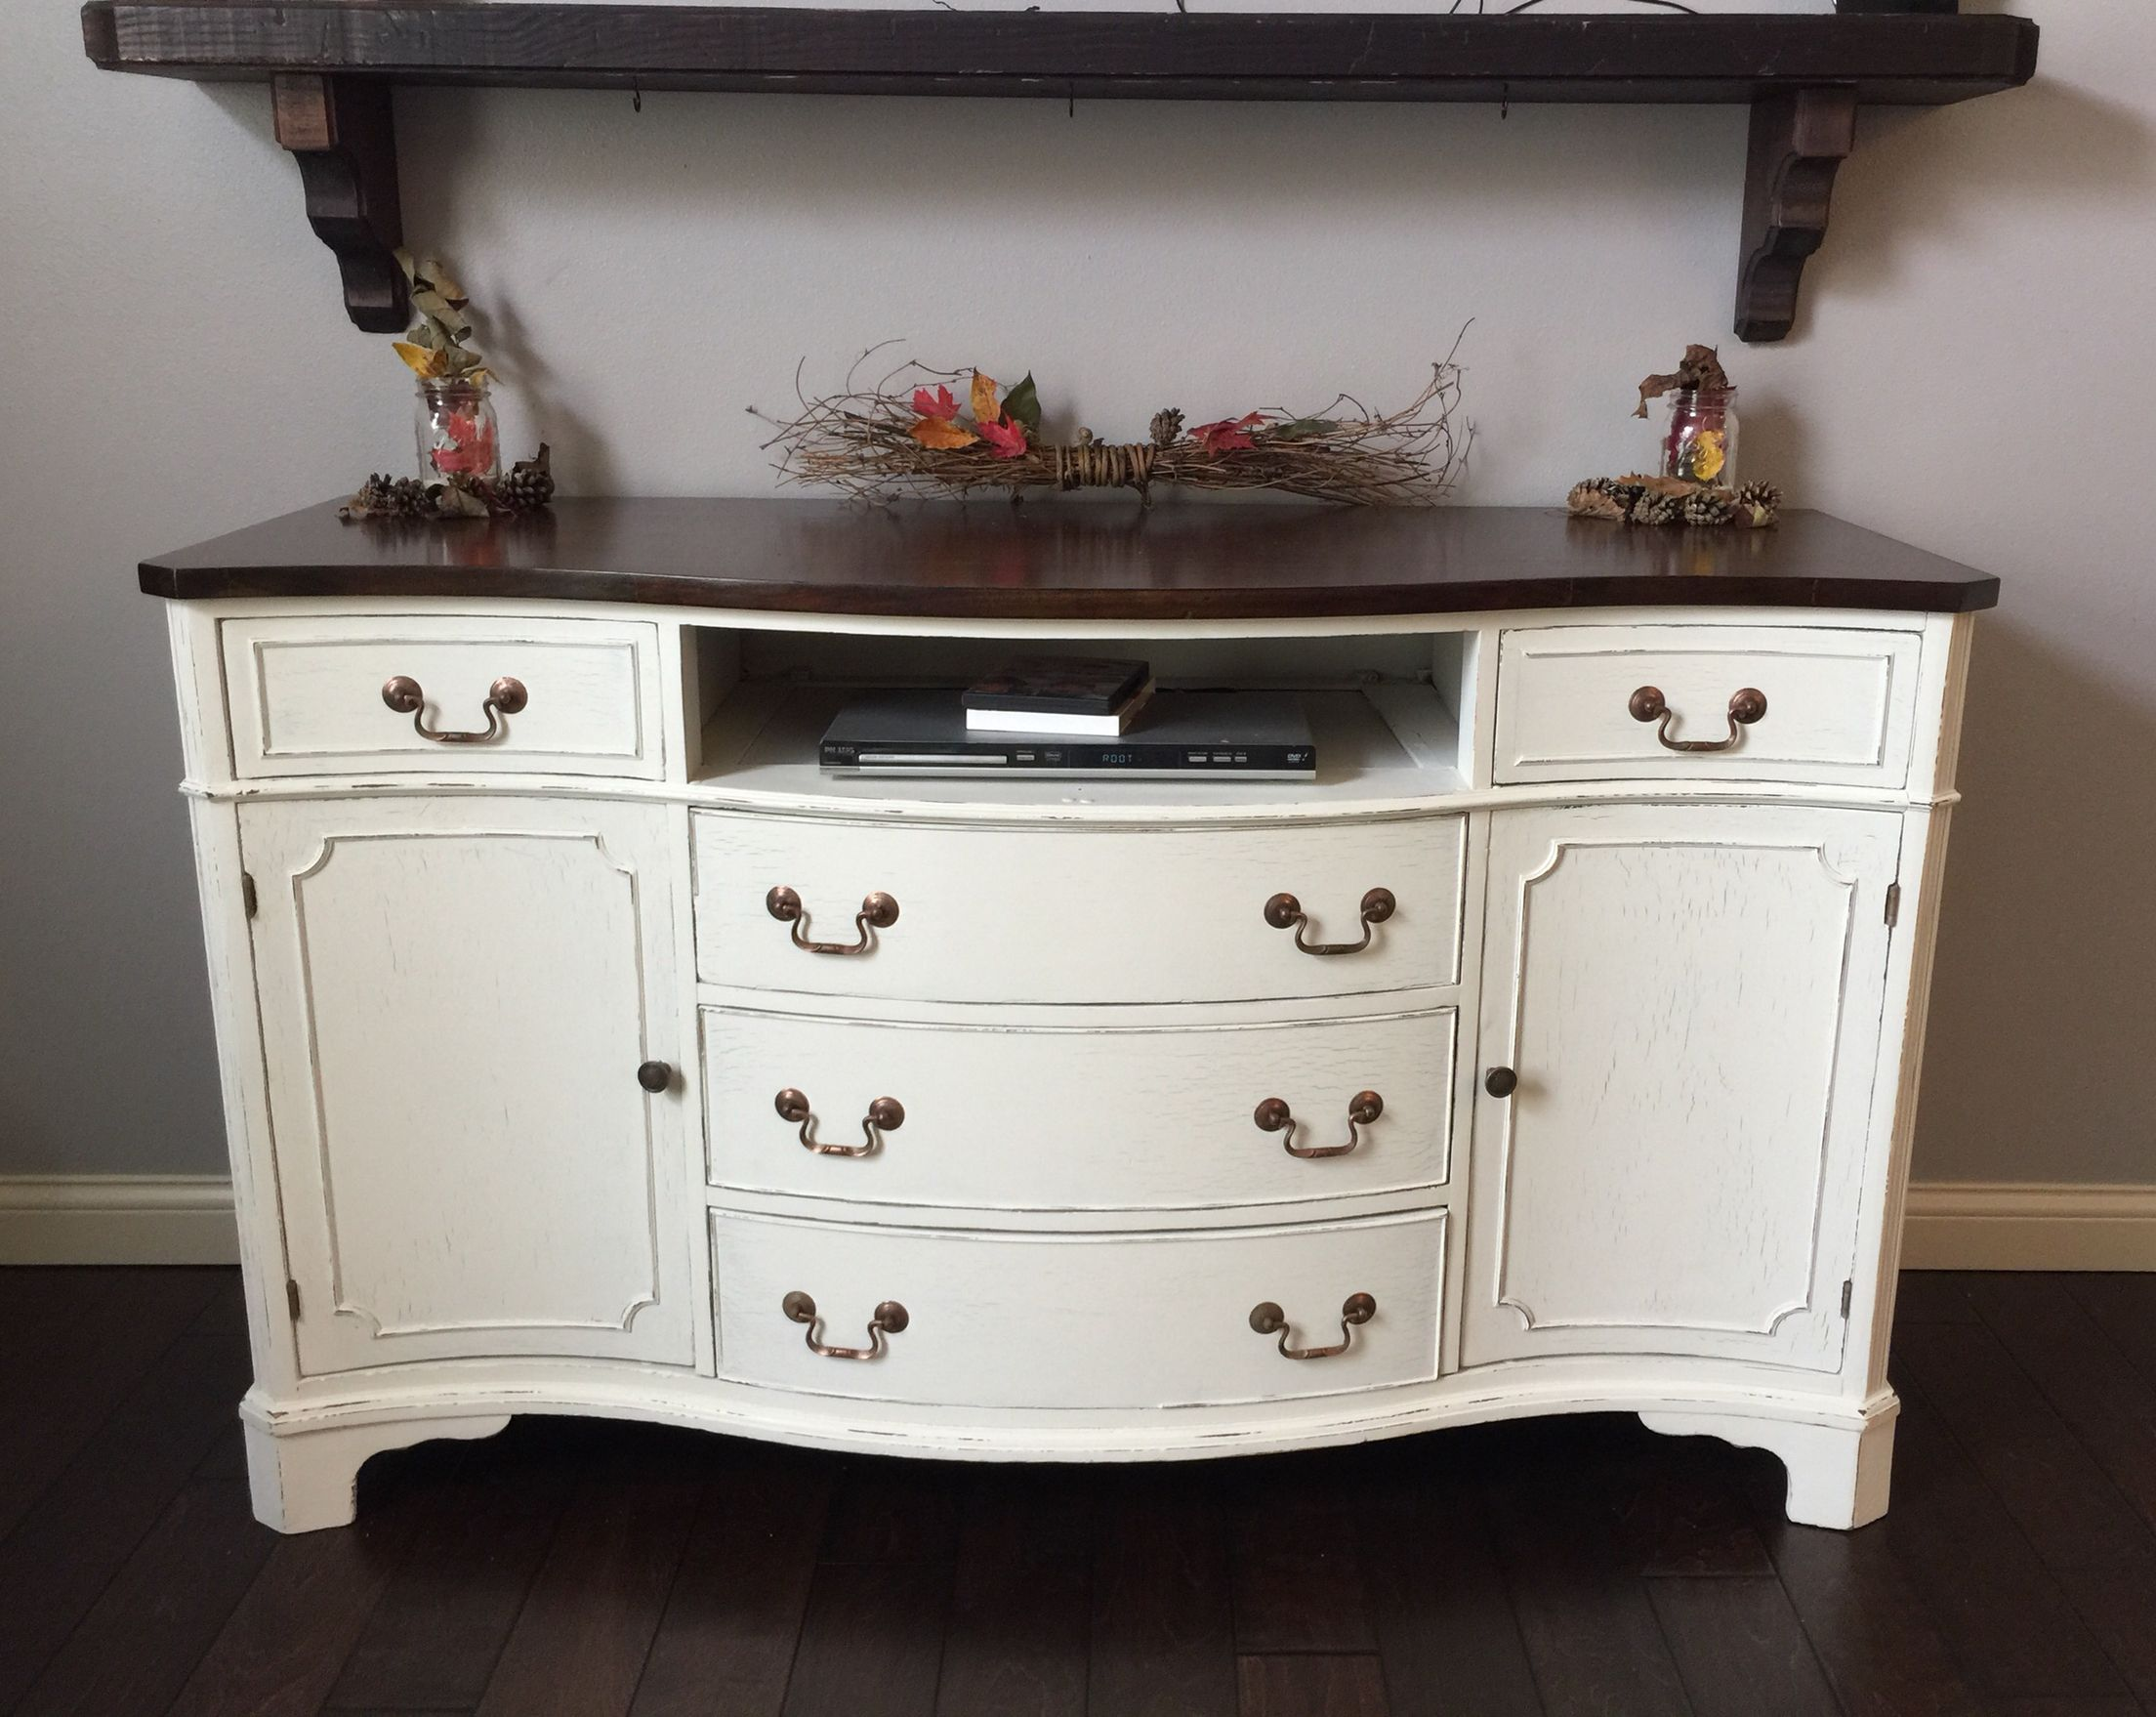 How to paint a vintage buffet home stories a to z - Antique Buffet Sideboard Lightly Distressed Her Dainties Valspar Chalk Paint Finished With Clear Wax